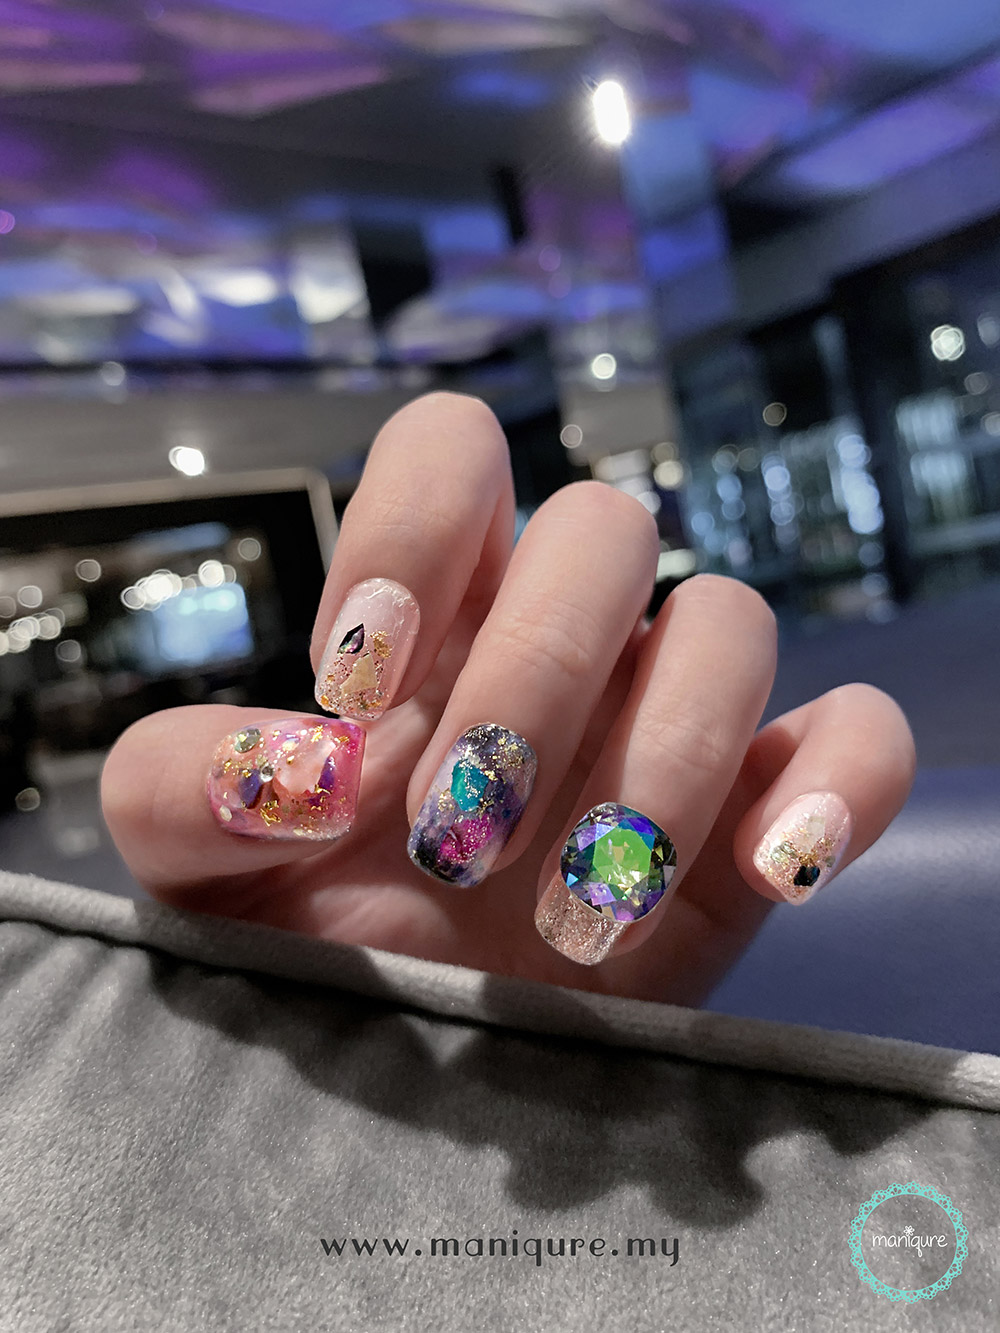 Cosmology Marble Nails - Galaxy Manicure